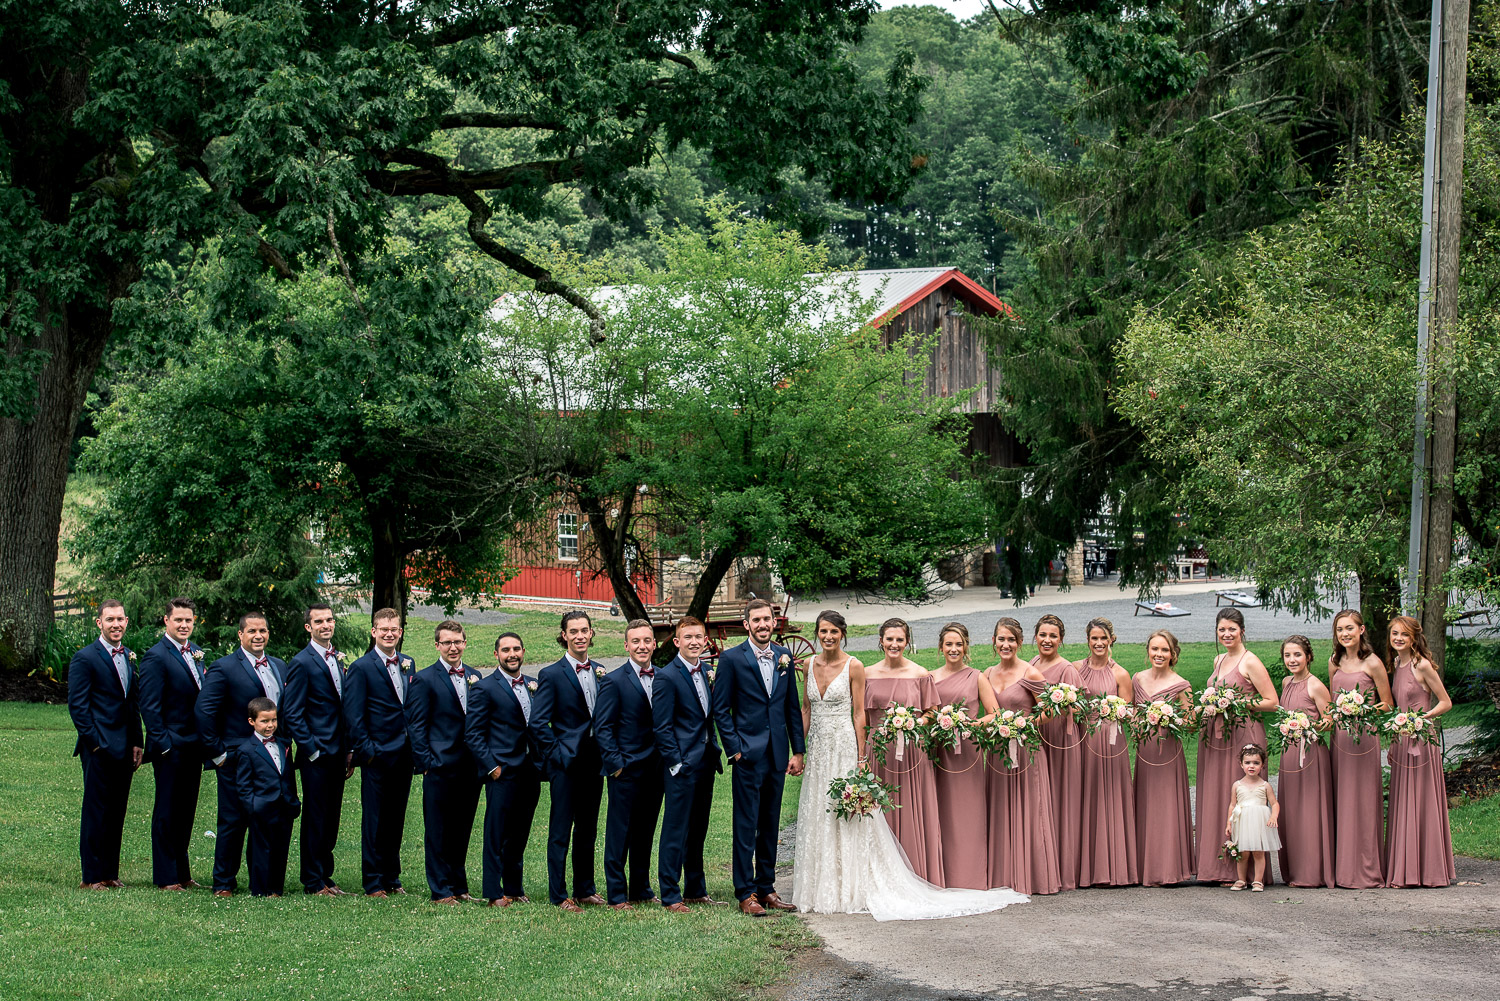 bridesmaids and groomsmen together